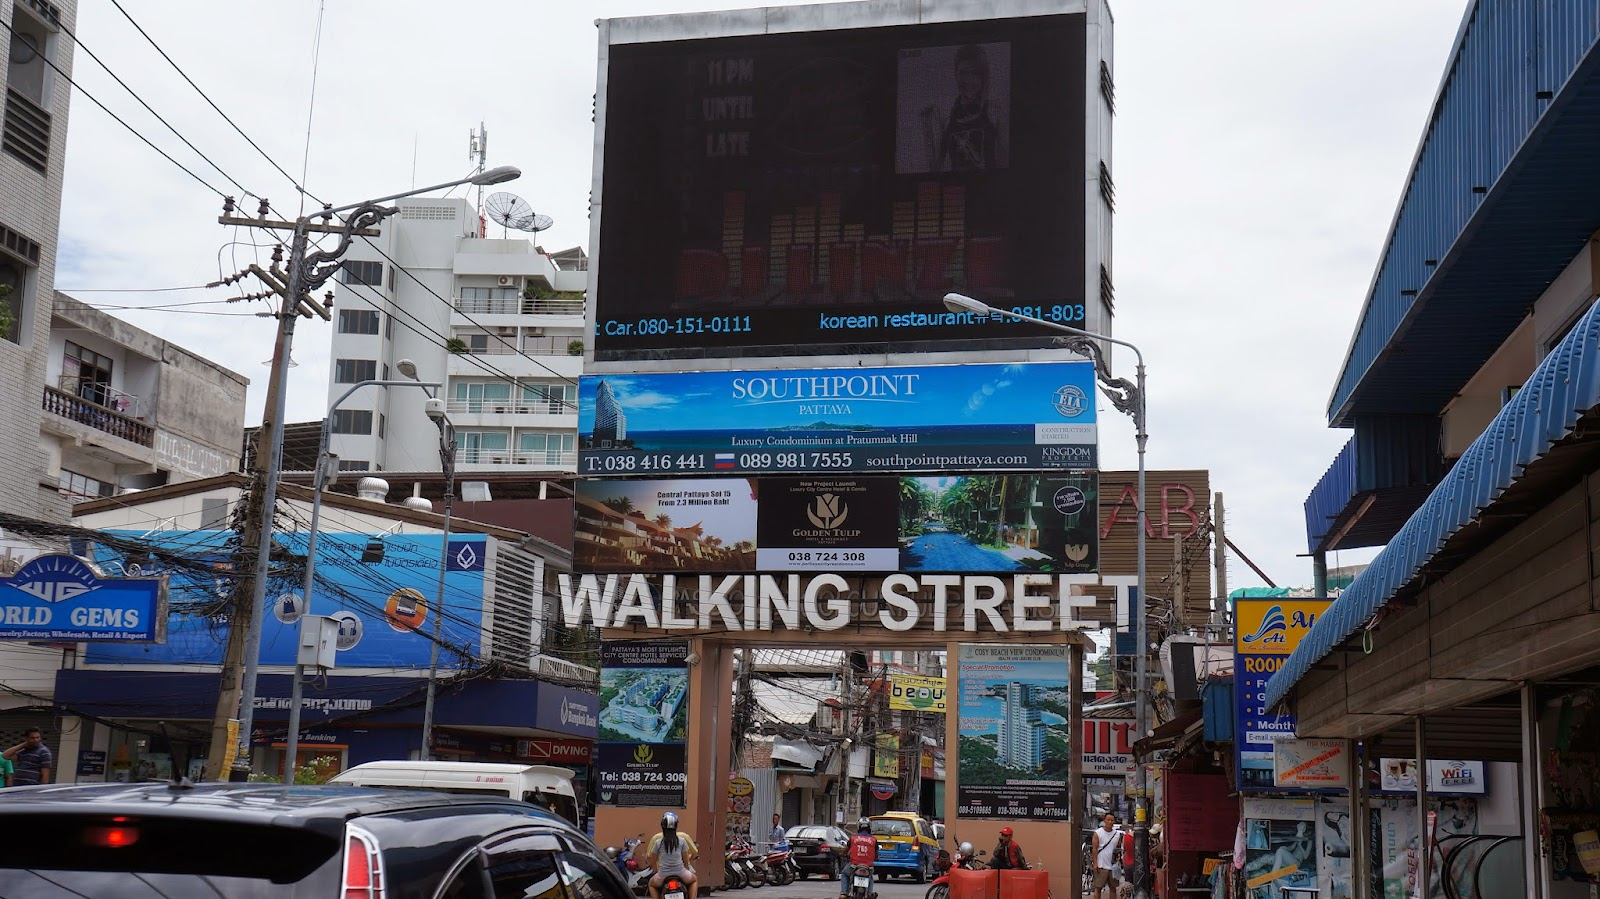 Pattaya Walking Street. Nothing much to see during the day though